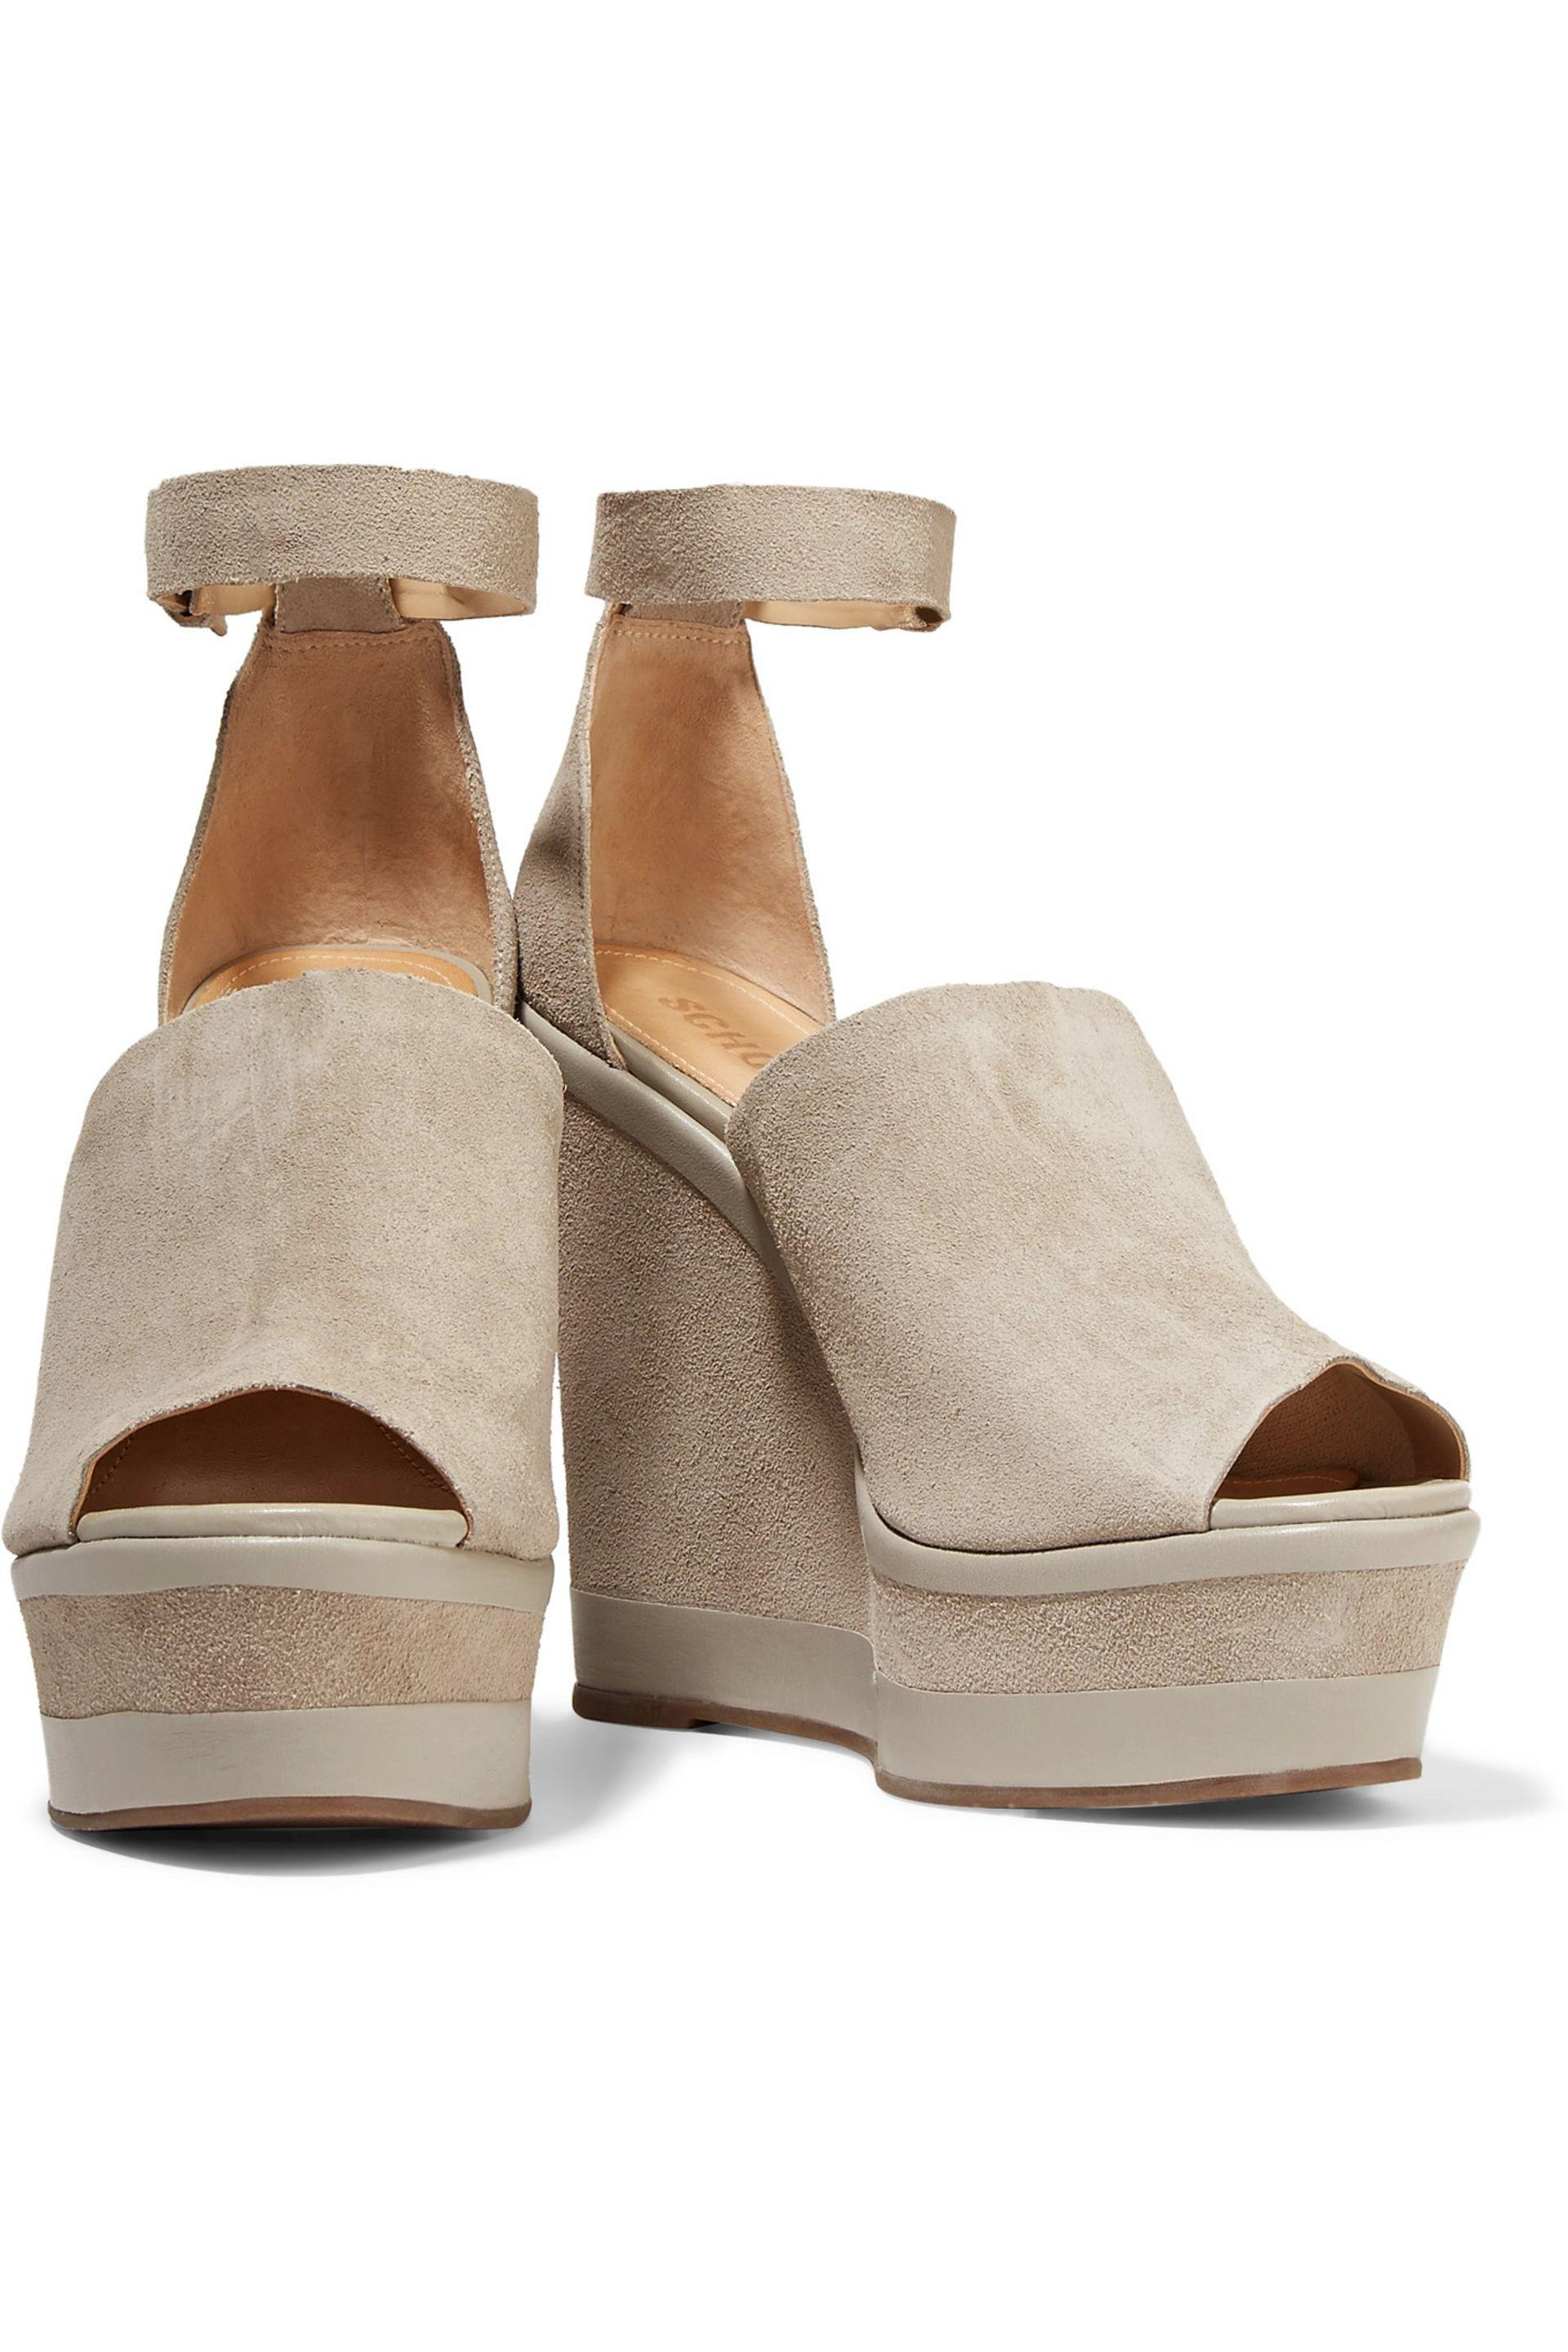 Schutz - Morlen Leather-trimmed Suede Wedge Sandals Light Gray - Lyst. View  Fullscreen